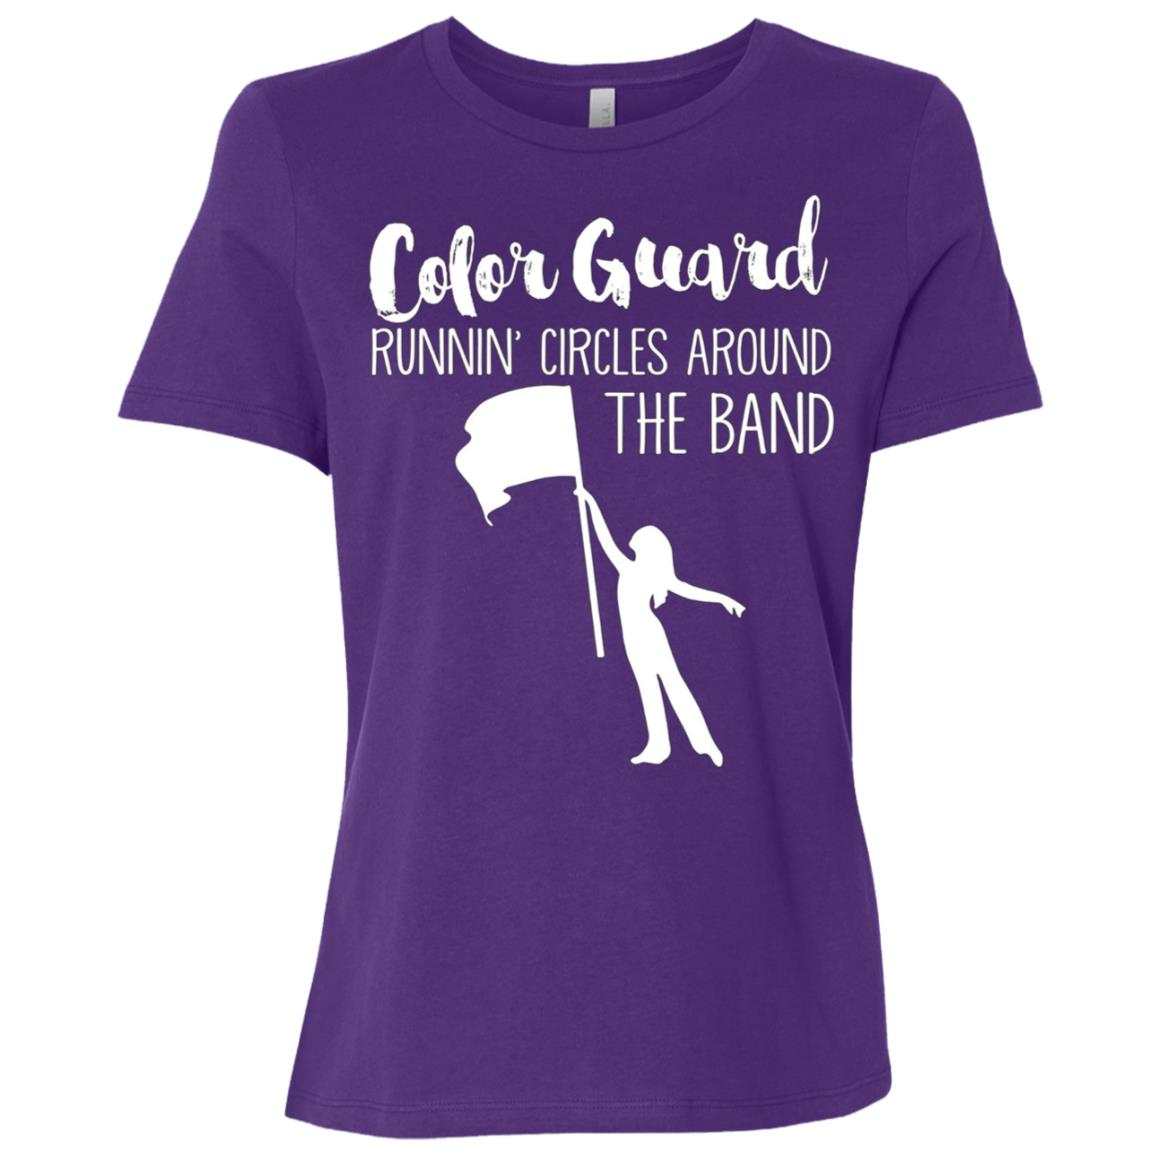 COLOR GUARD RUNNING AROUND BAND, Funny ColorGuard Women Short Sleeve T-Shirt